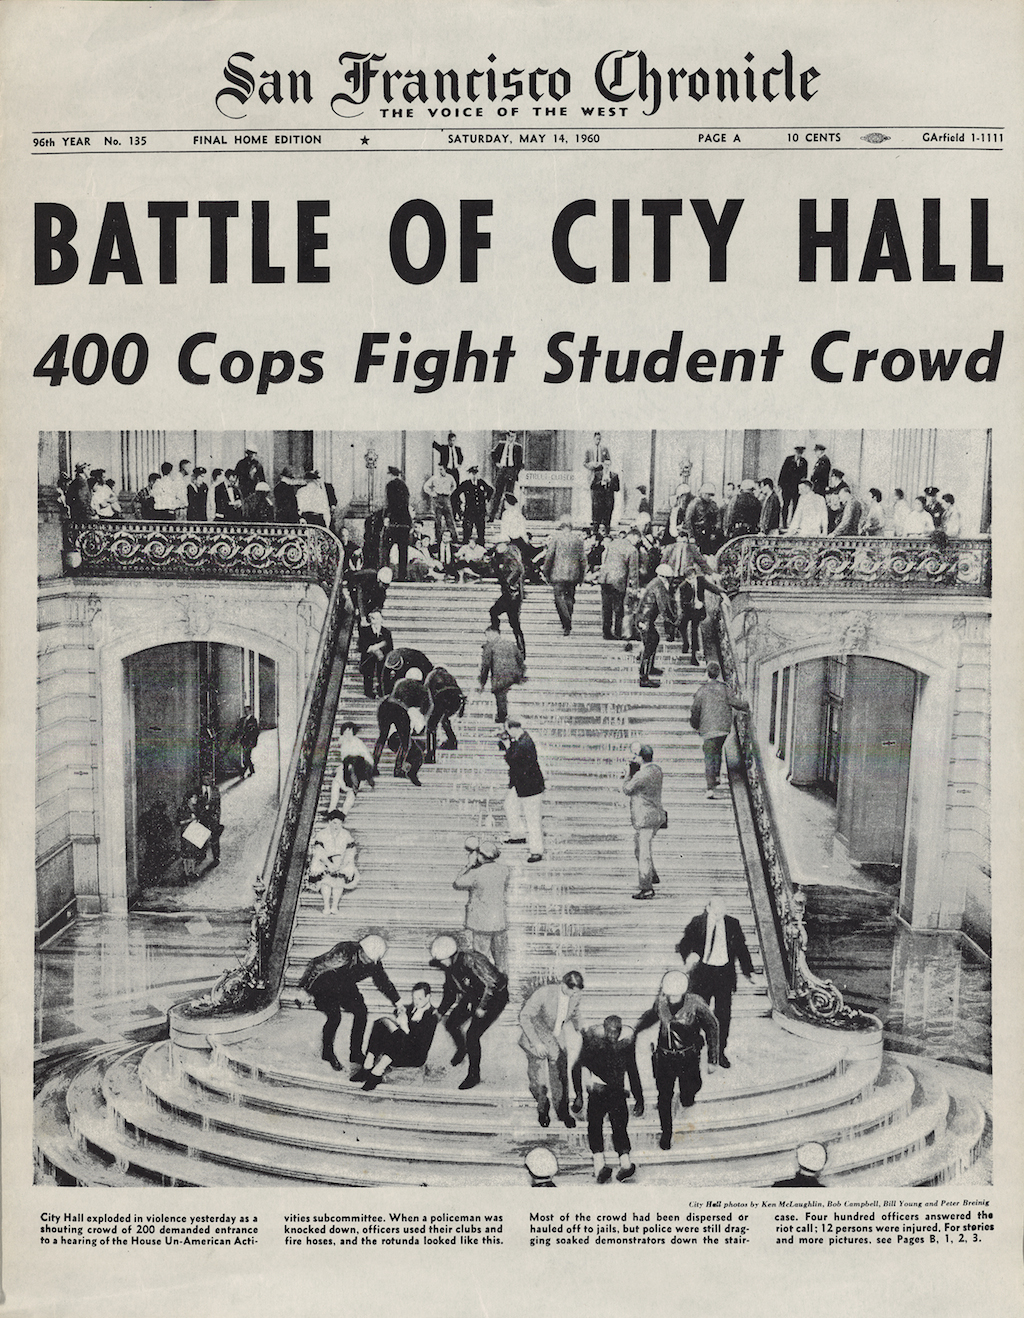 Battle of City Hall: 400 Cops Fight Student Crowd